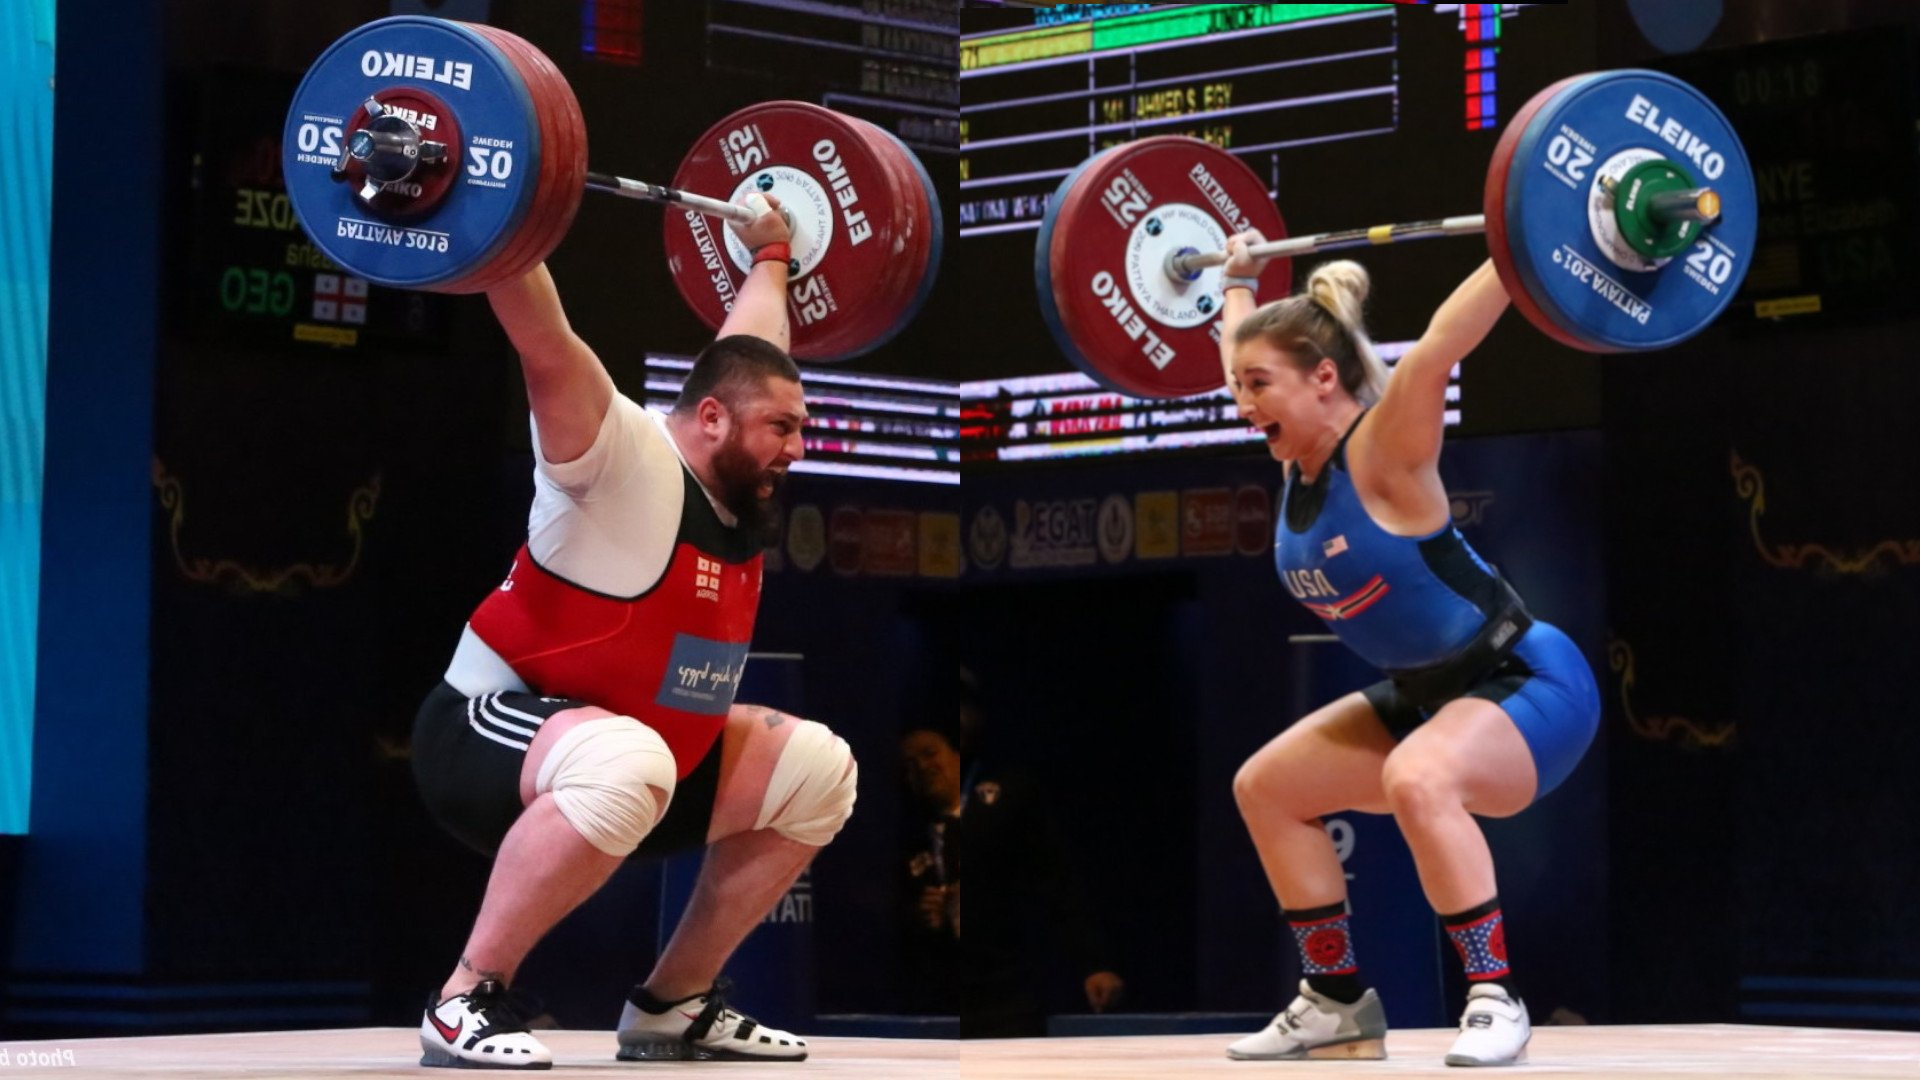 Lasha Talakhadze and Kaye Nye win IWF 2019 Weightlifters of the Year